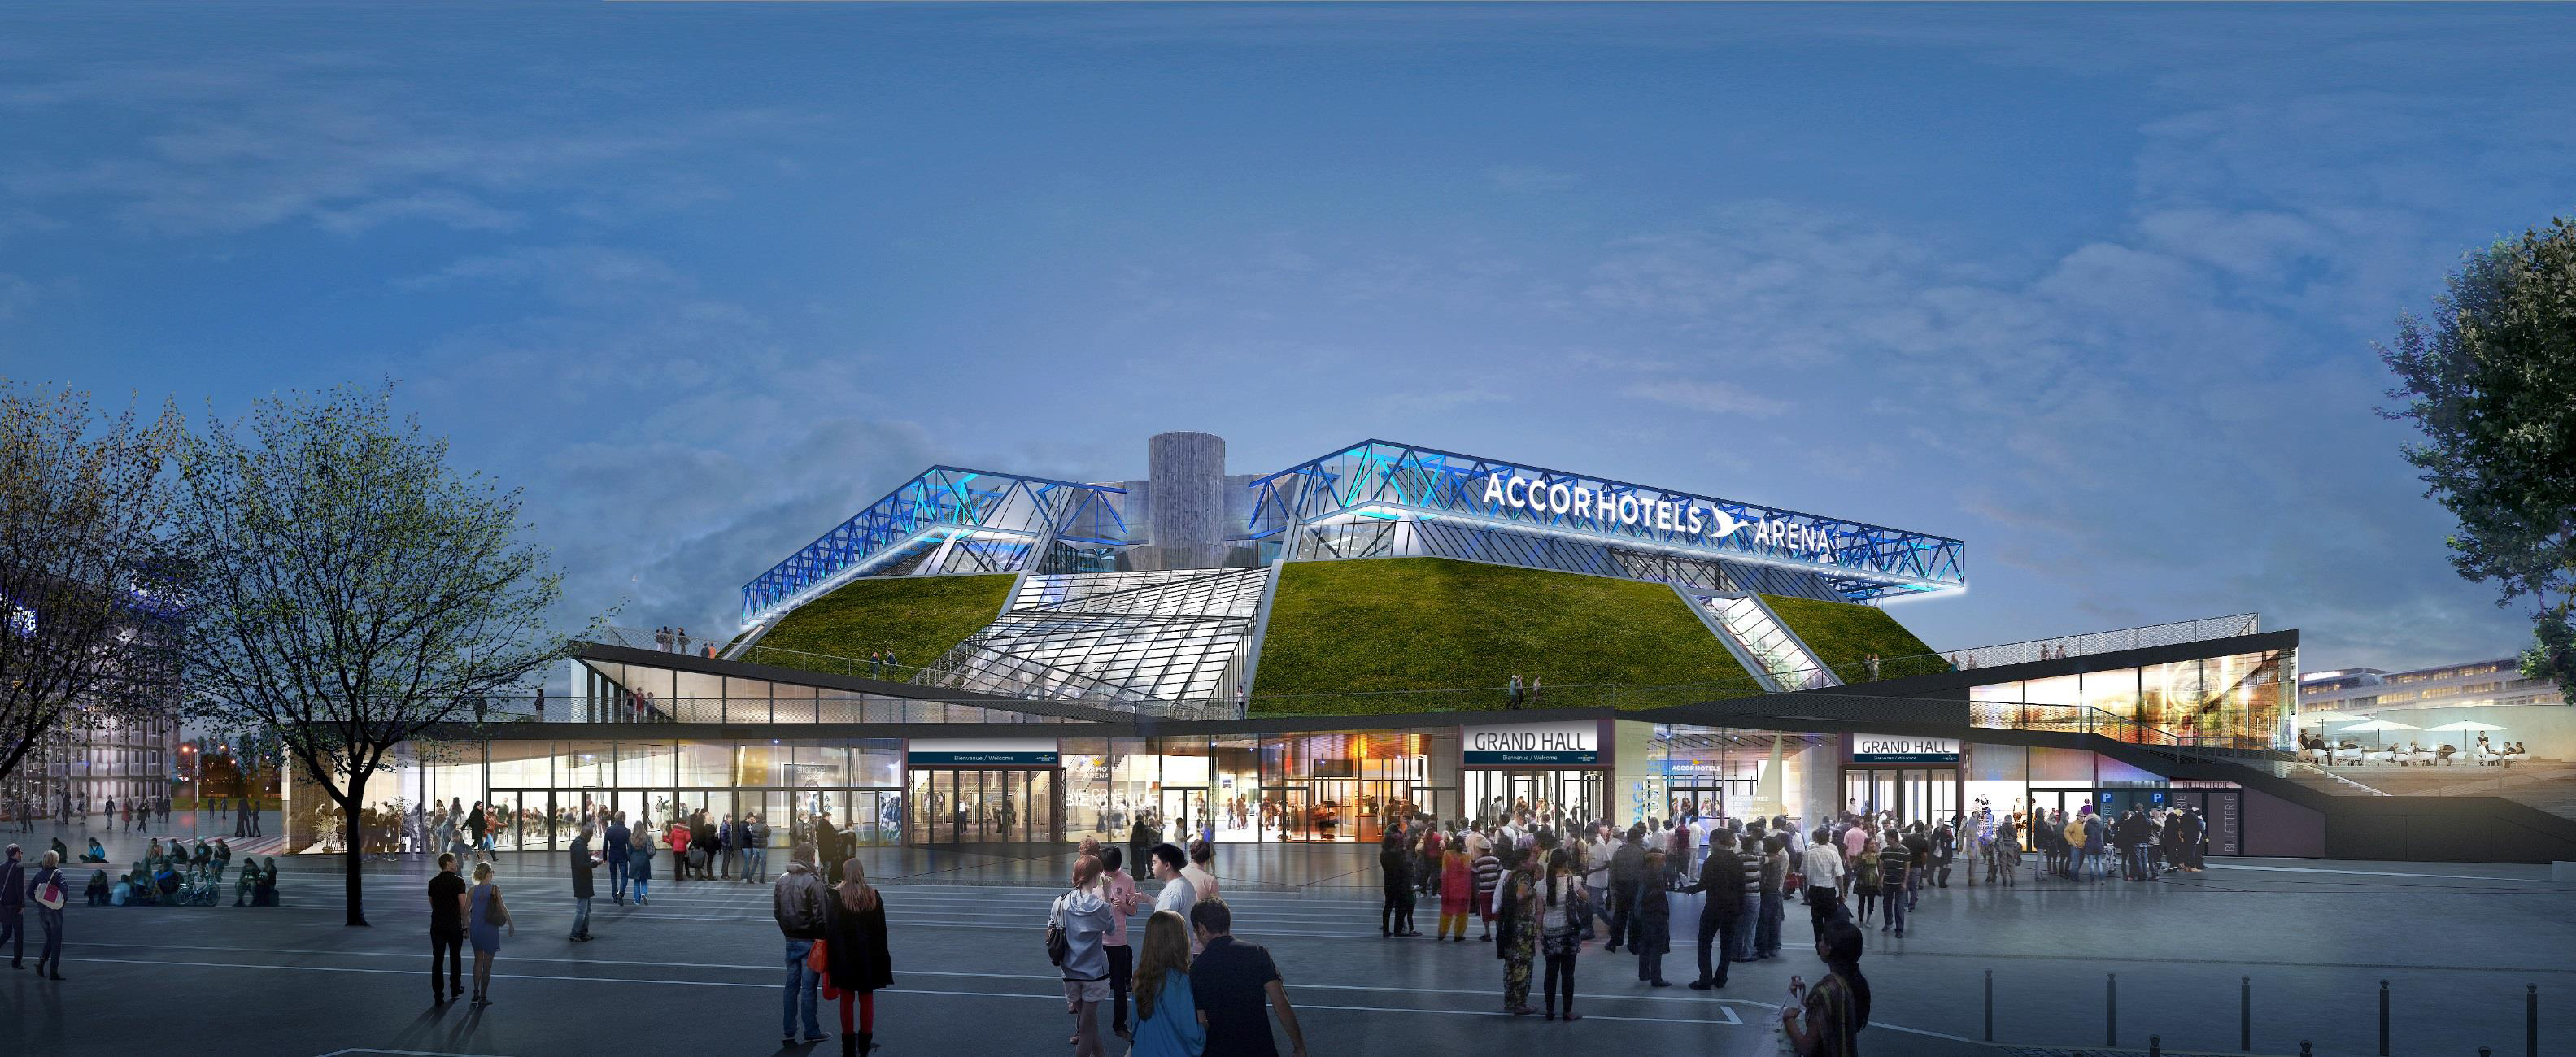 Accorhotels arena Naming Bercy